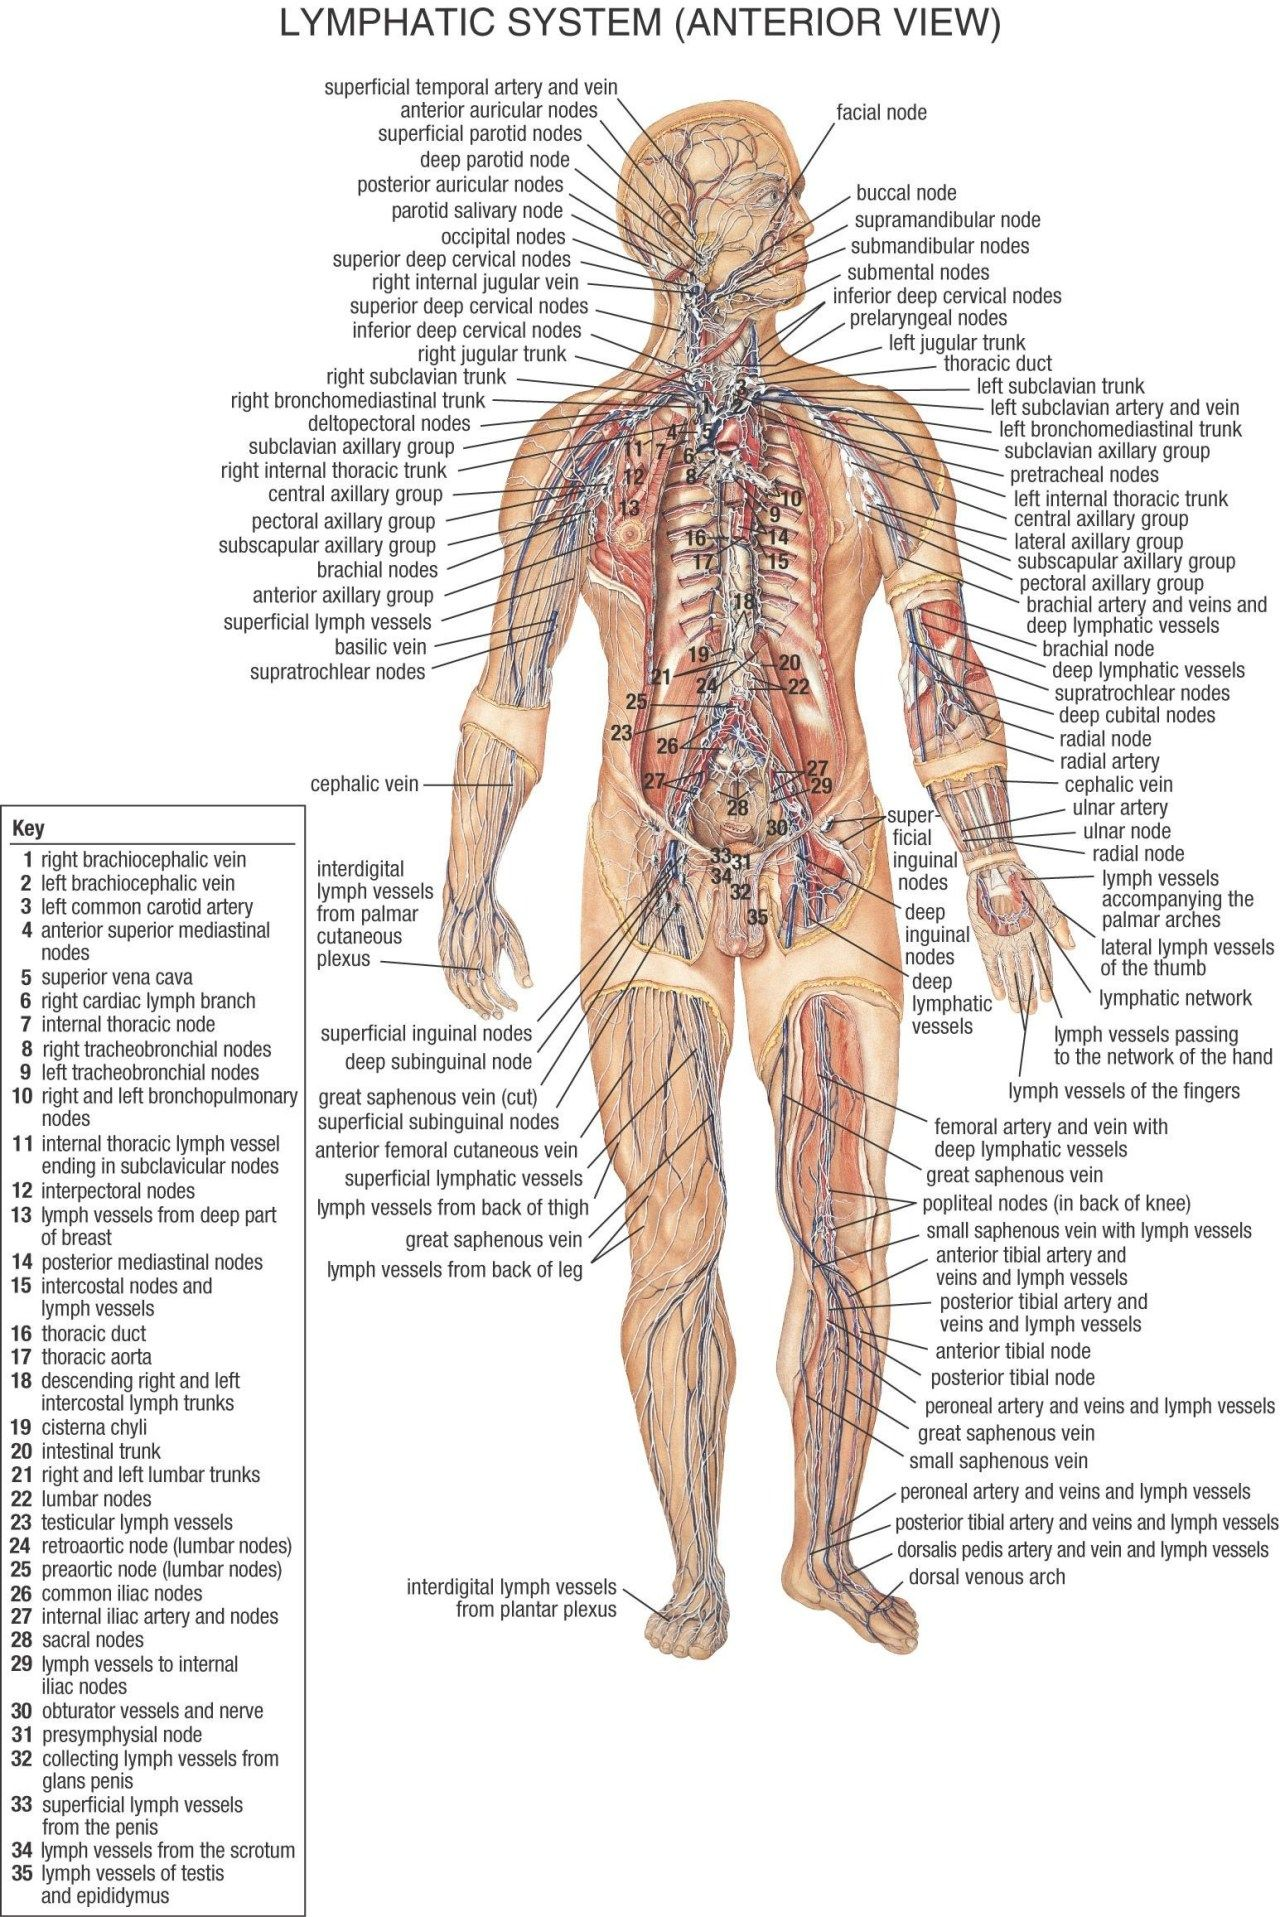 The Lymphatic System Diagram Koibana Info Lymphatic System Diagram Lymphatic System Anatomy Lymph System